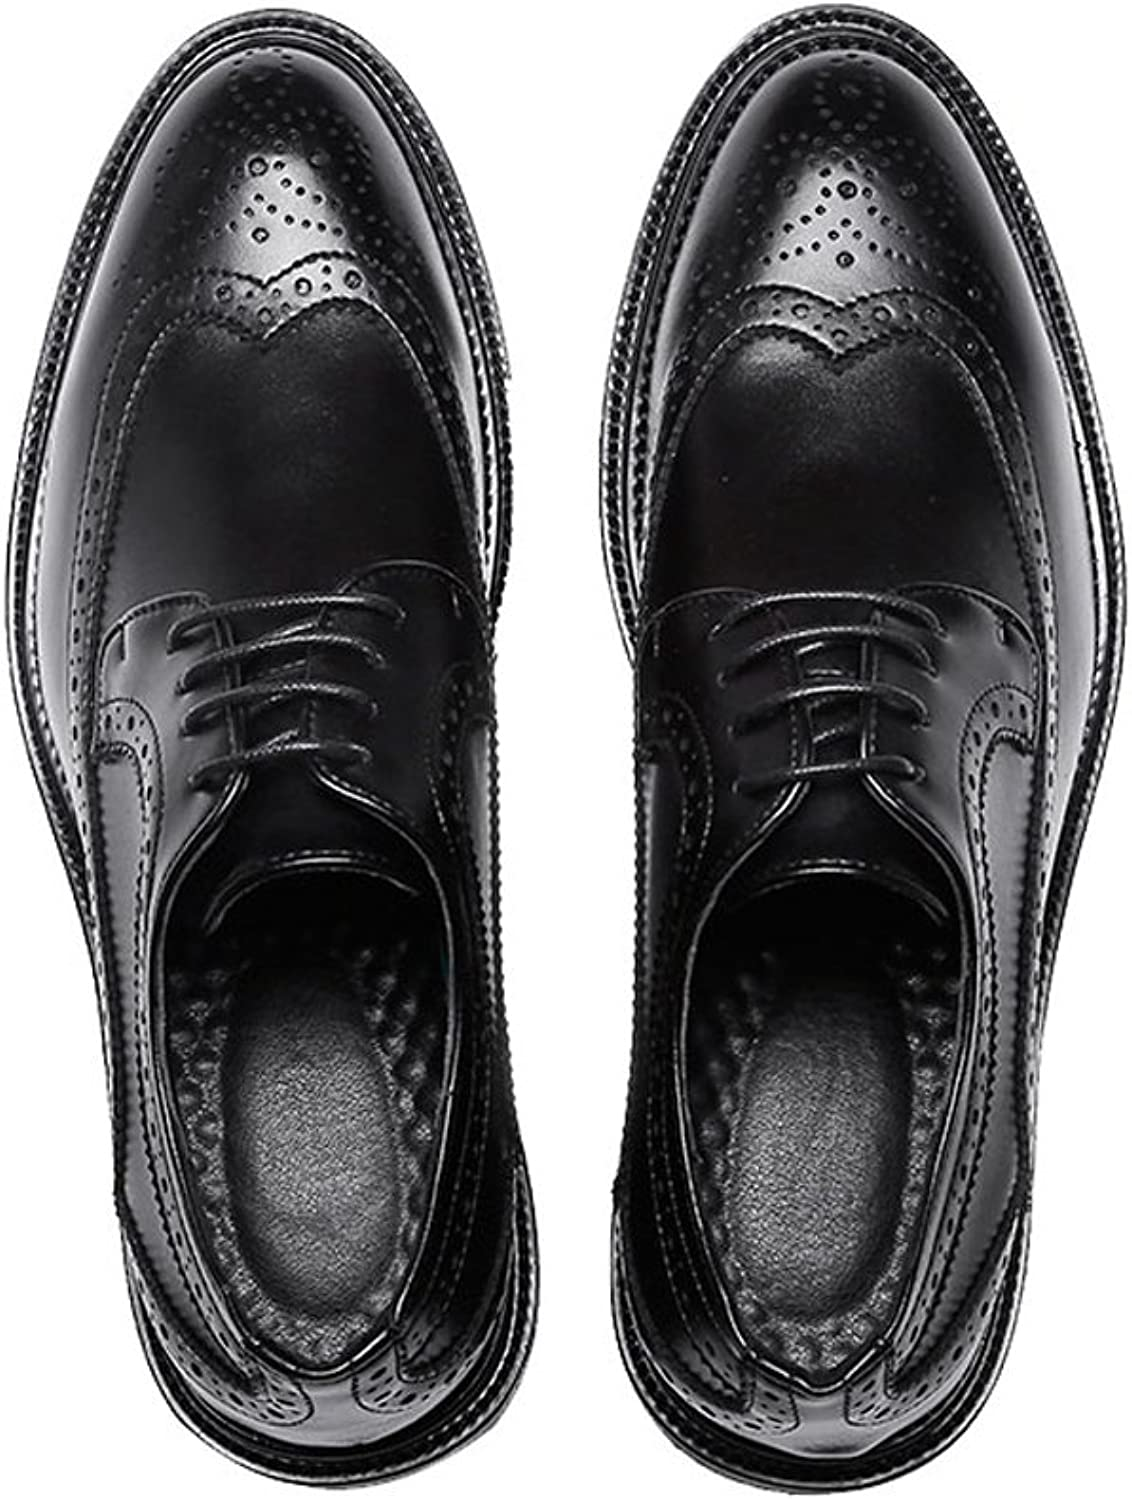 FeiNianJSh Men's shoes Fashion Business Brogue shoes PU Leather Upper Lace Up Wingtip Decoration Breathable Outsole Oxfords